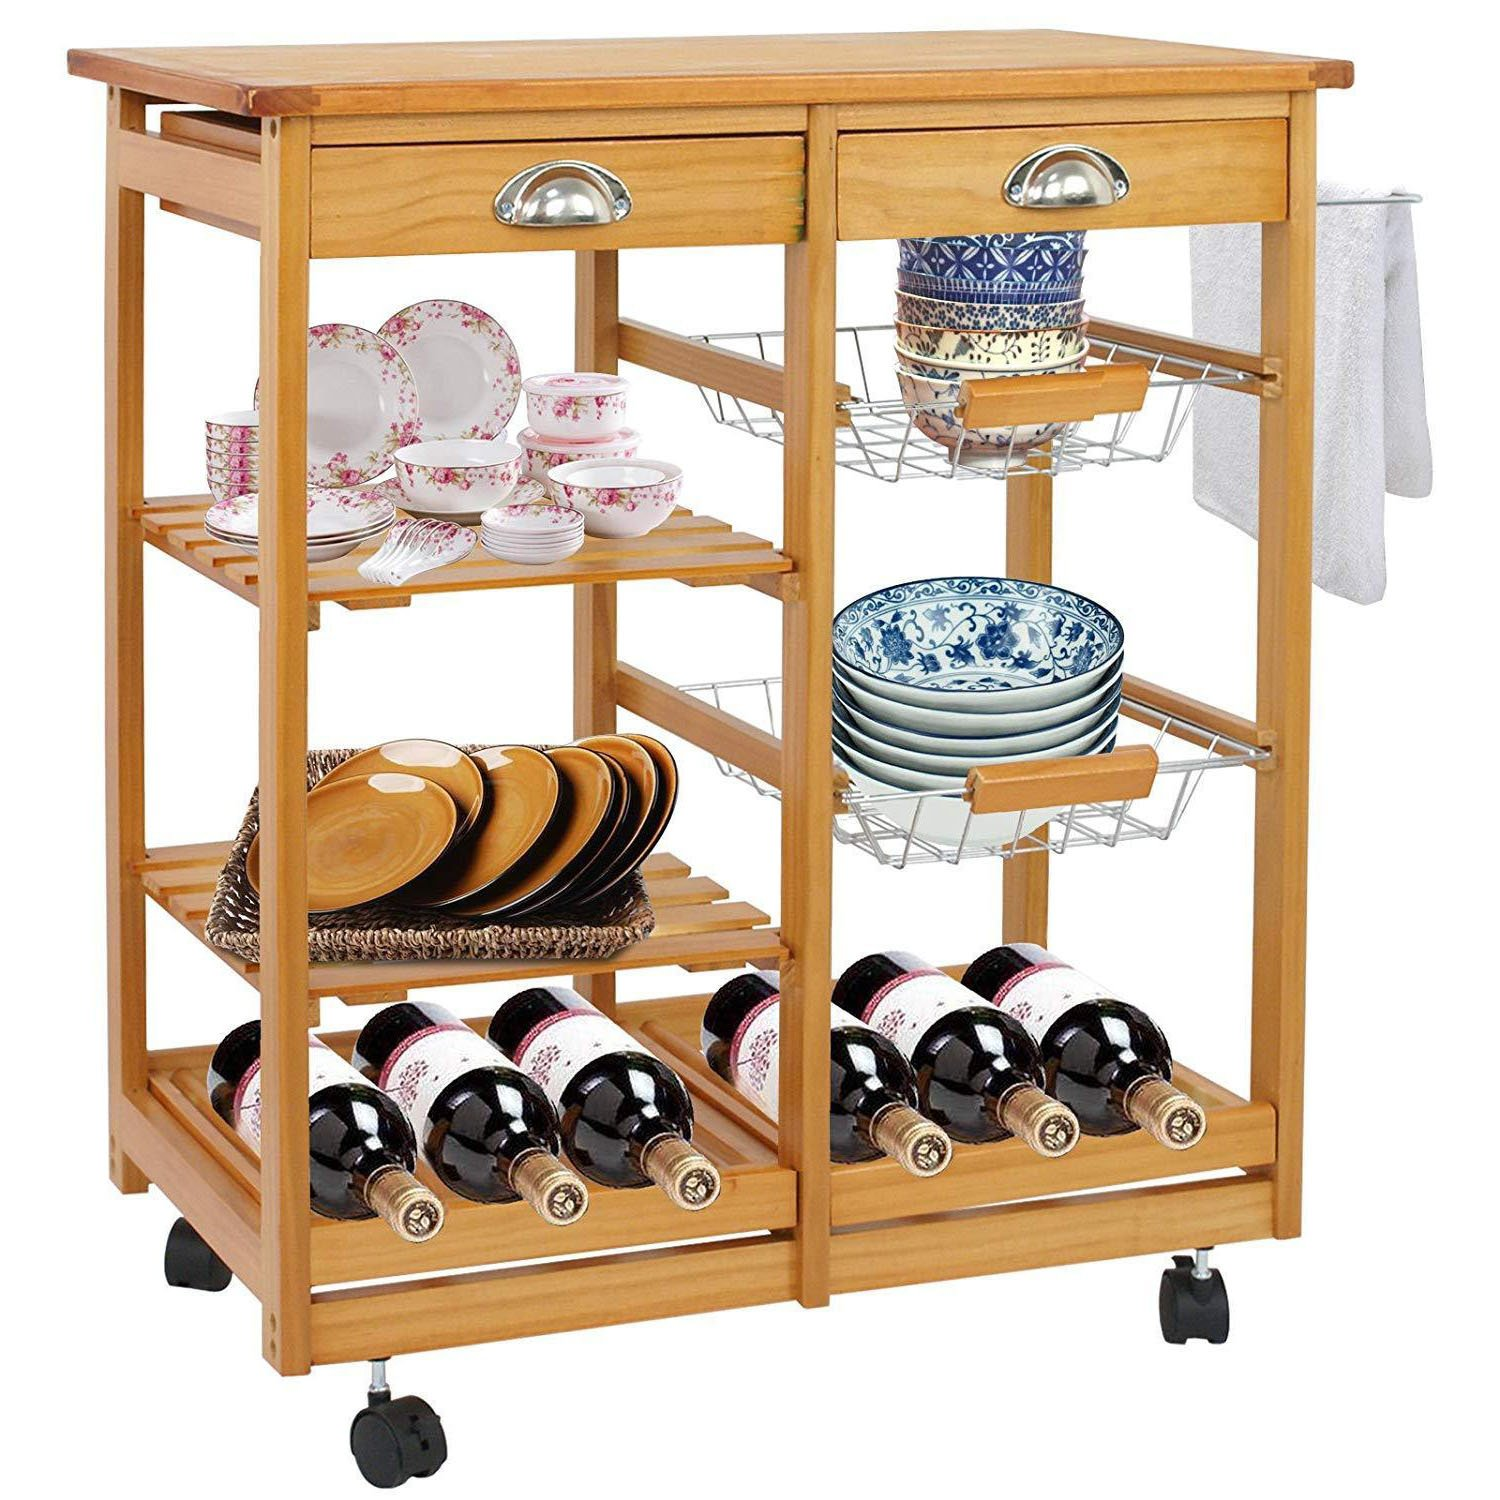 TG888 Rolling Durable Wood Kitchen Island Trolley Cart Dining Storage Drawers Shelf Cabinet